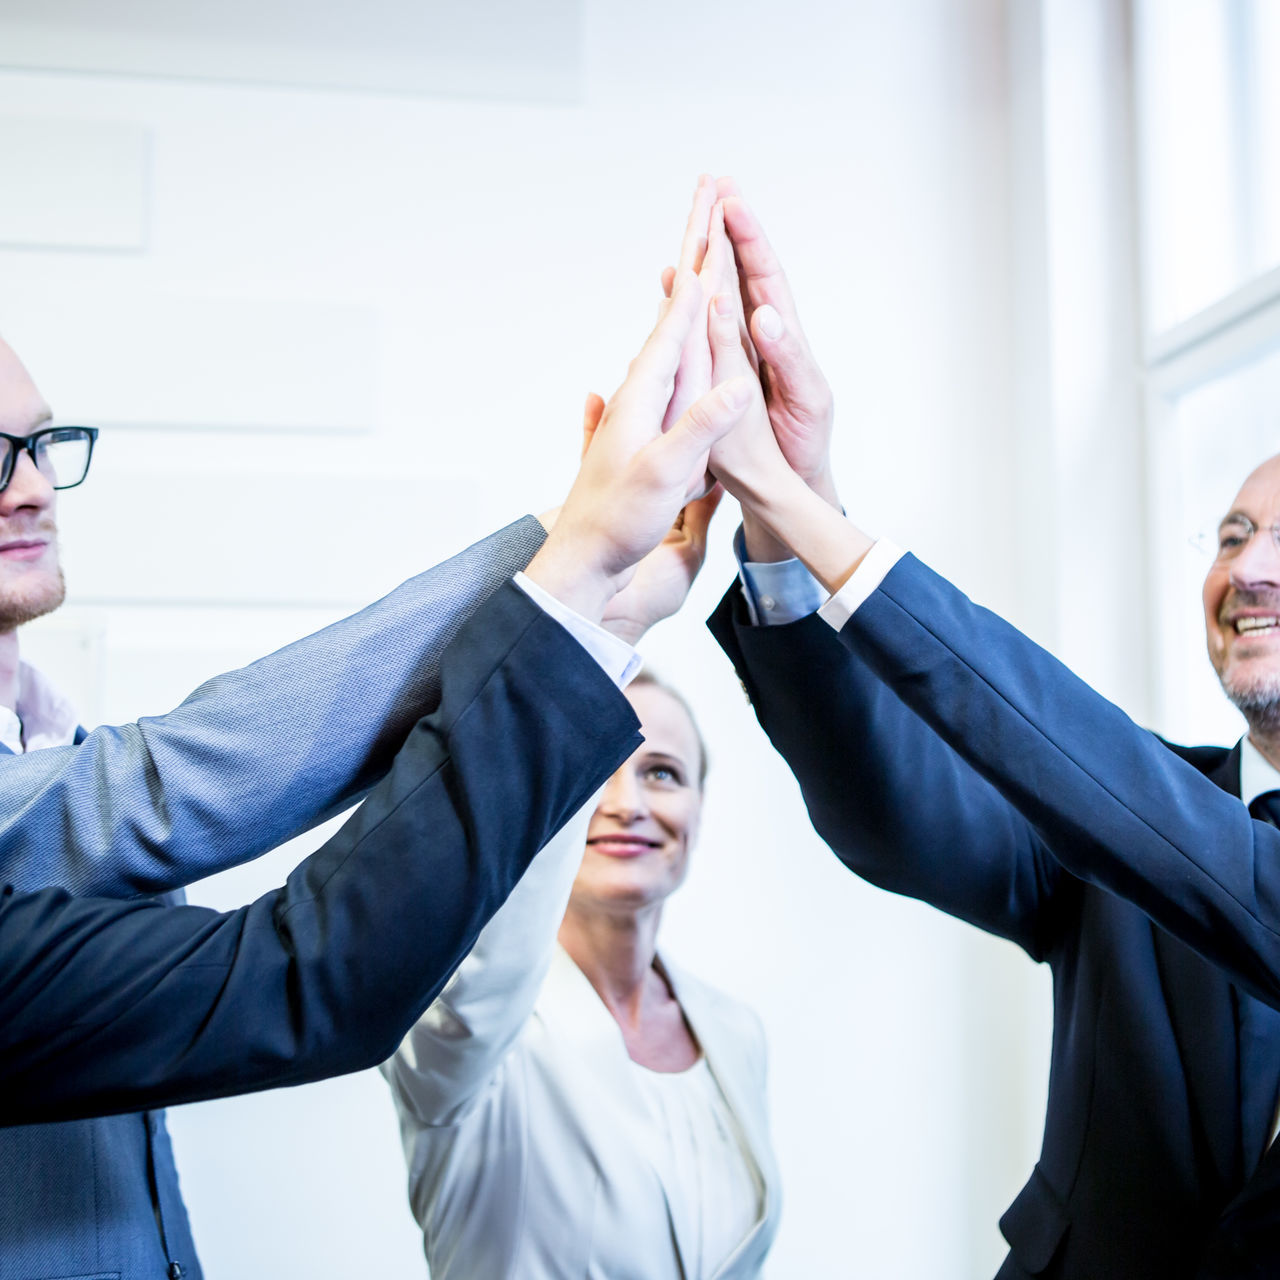 Business People Doing High-Five In Office